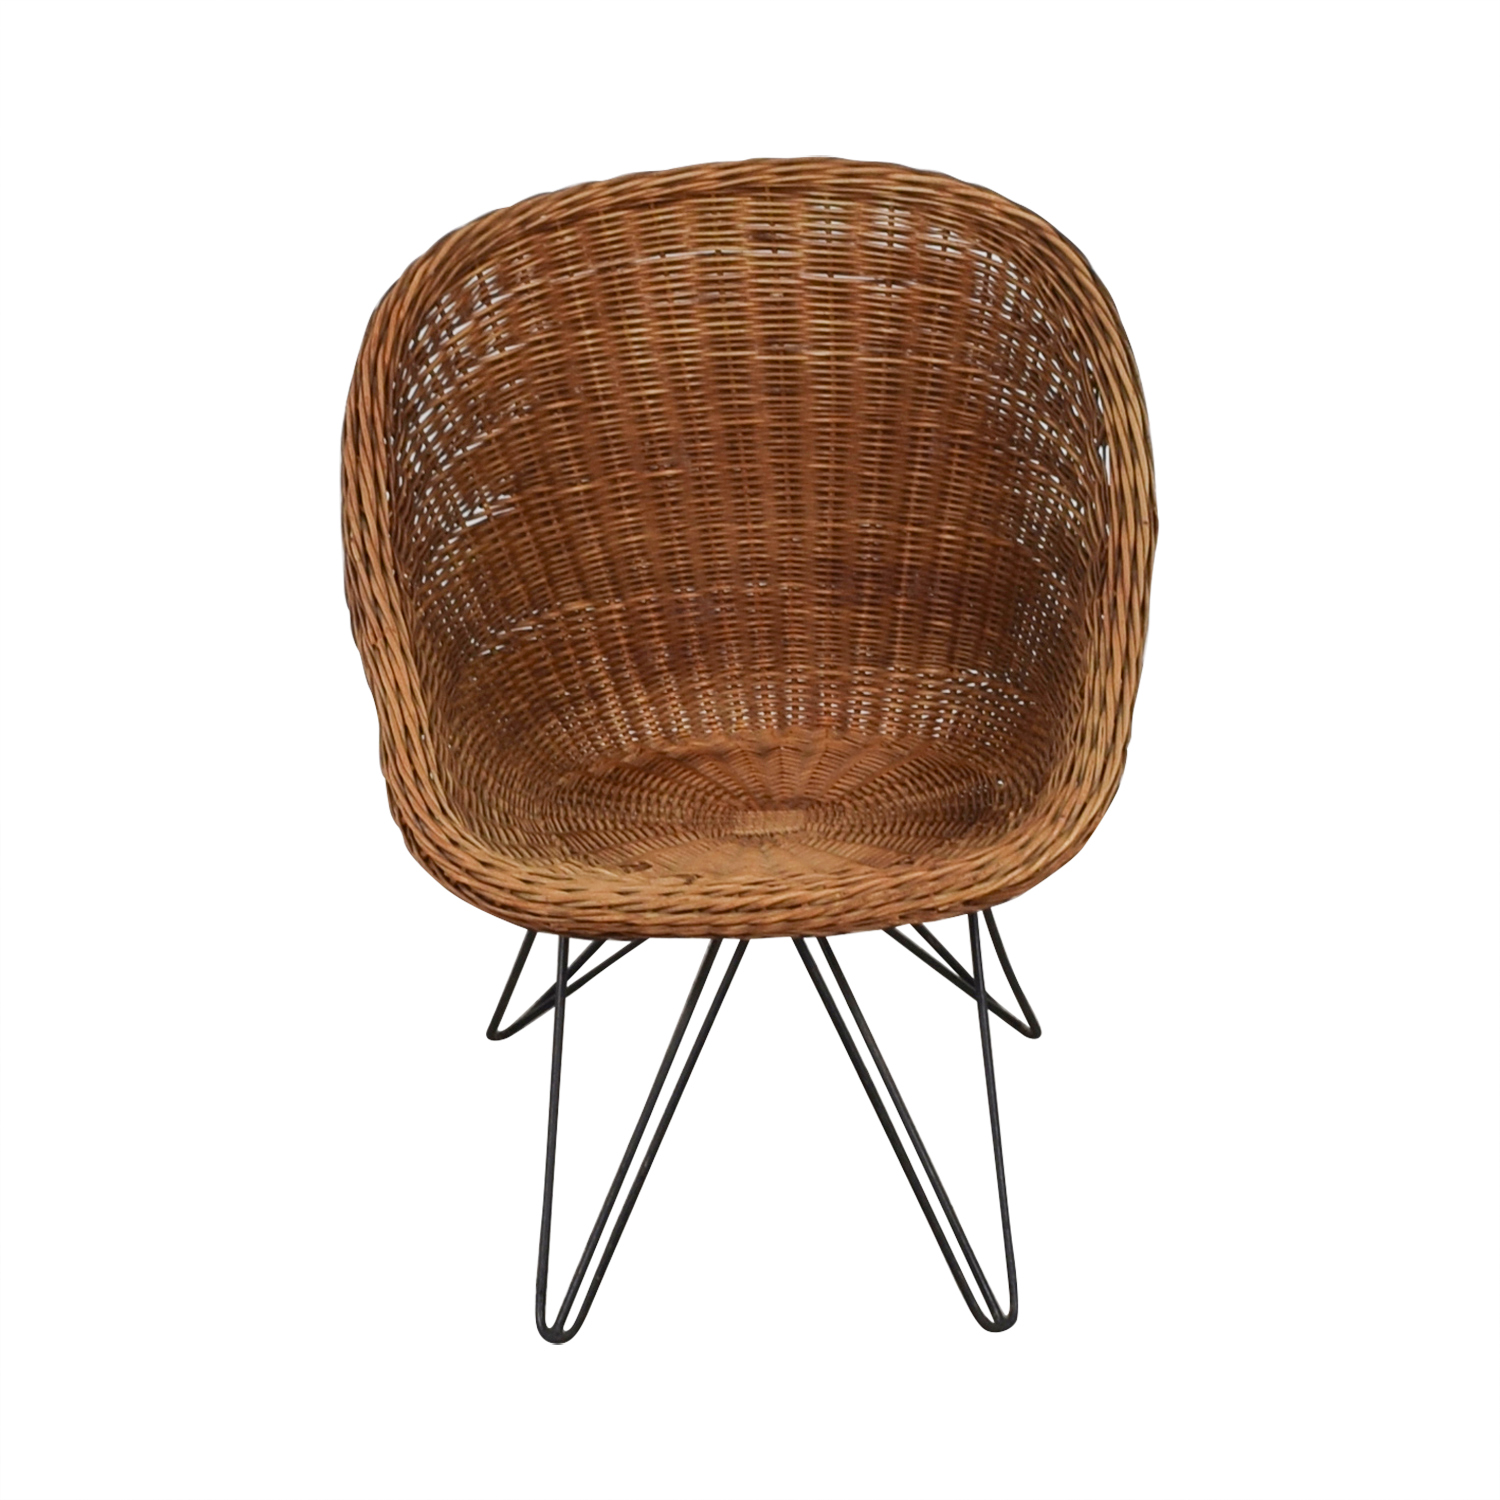 Wicker Chair with Metal Legs / Chairs